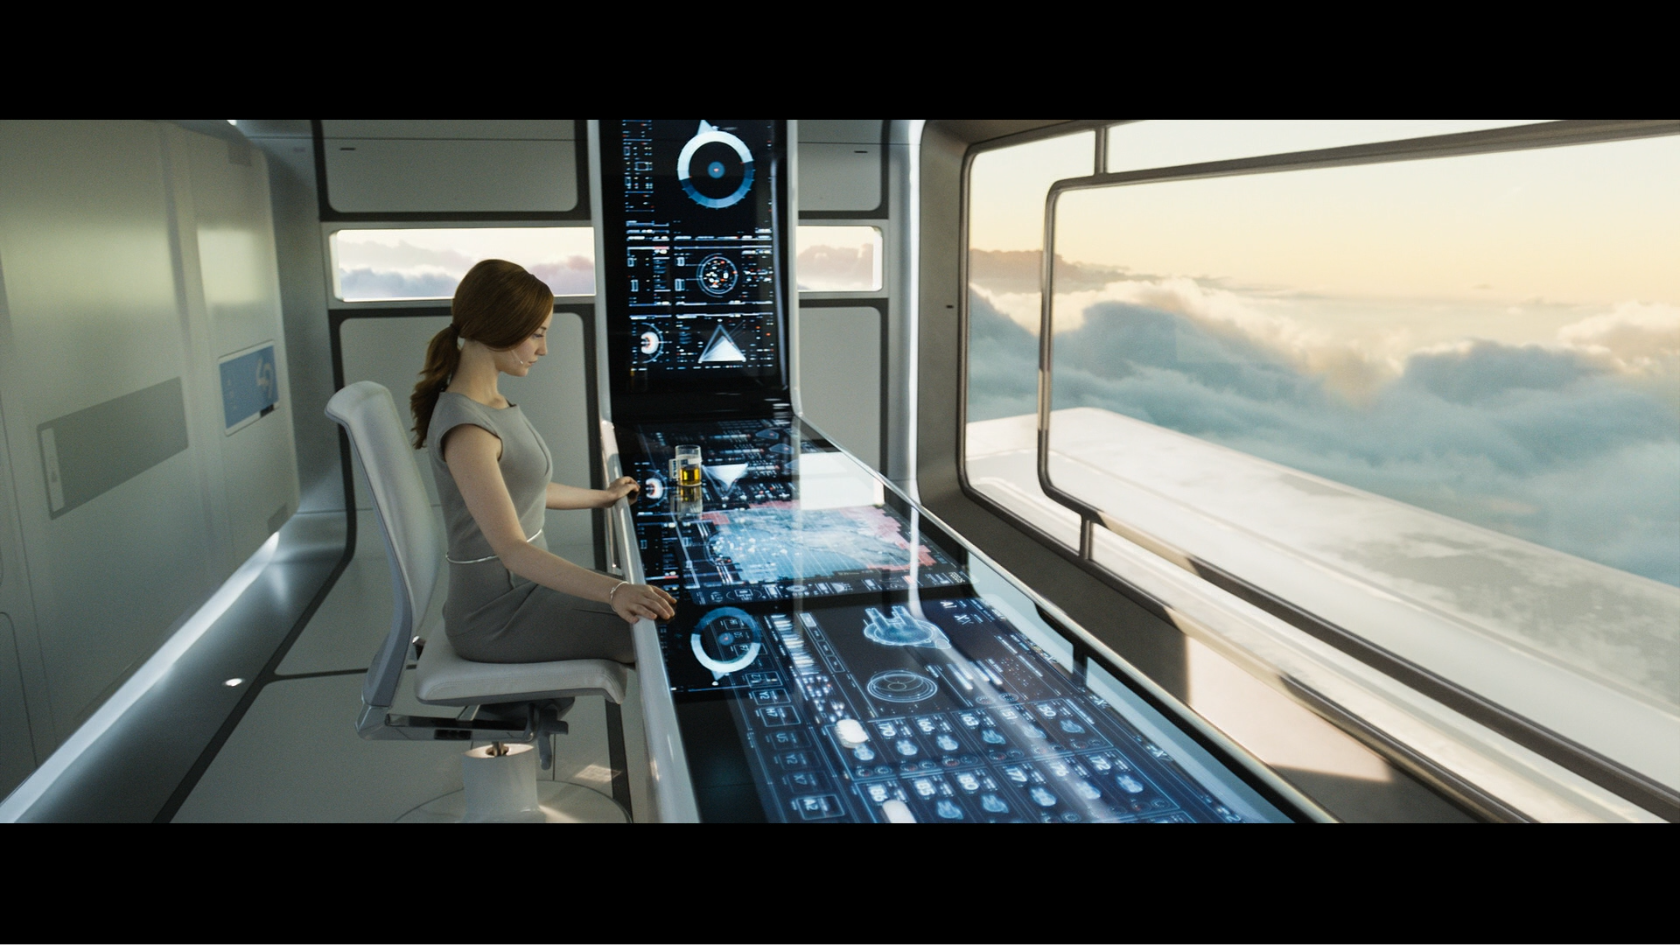 Victoria from the movie Oblivion at main control center, The control center is a touchable interface with lots of infographic data